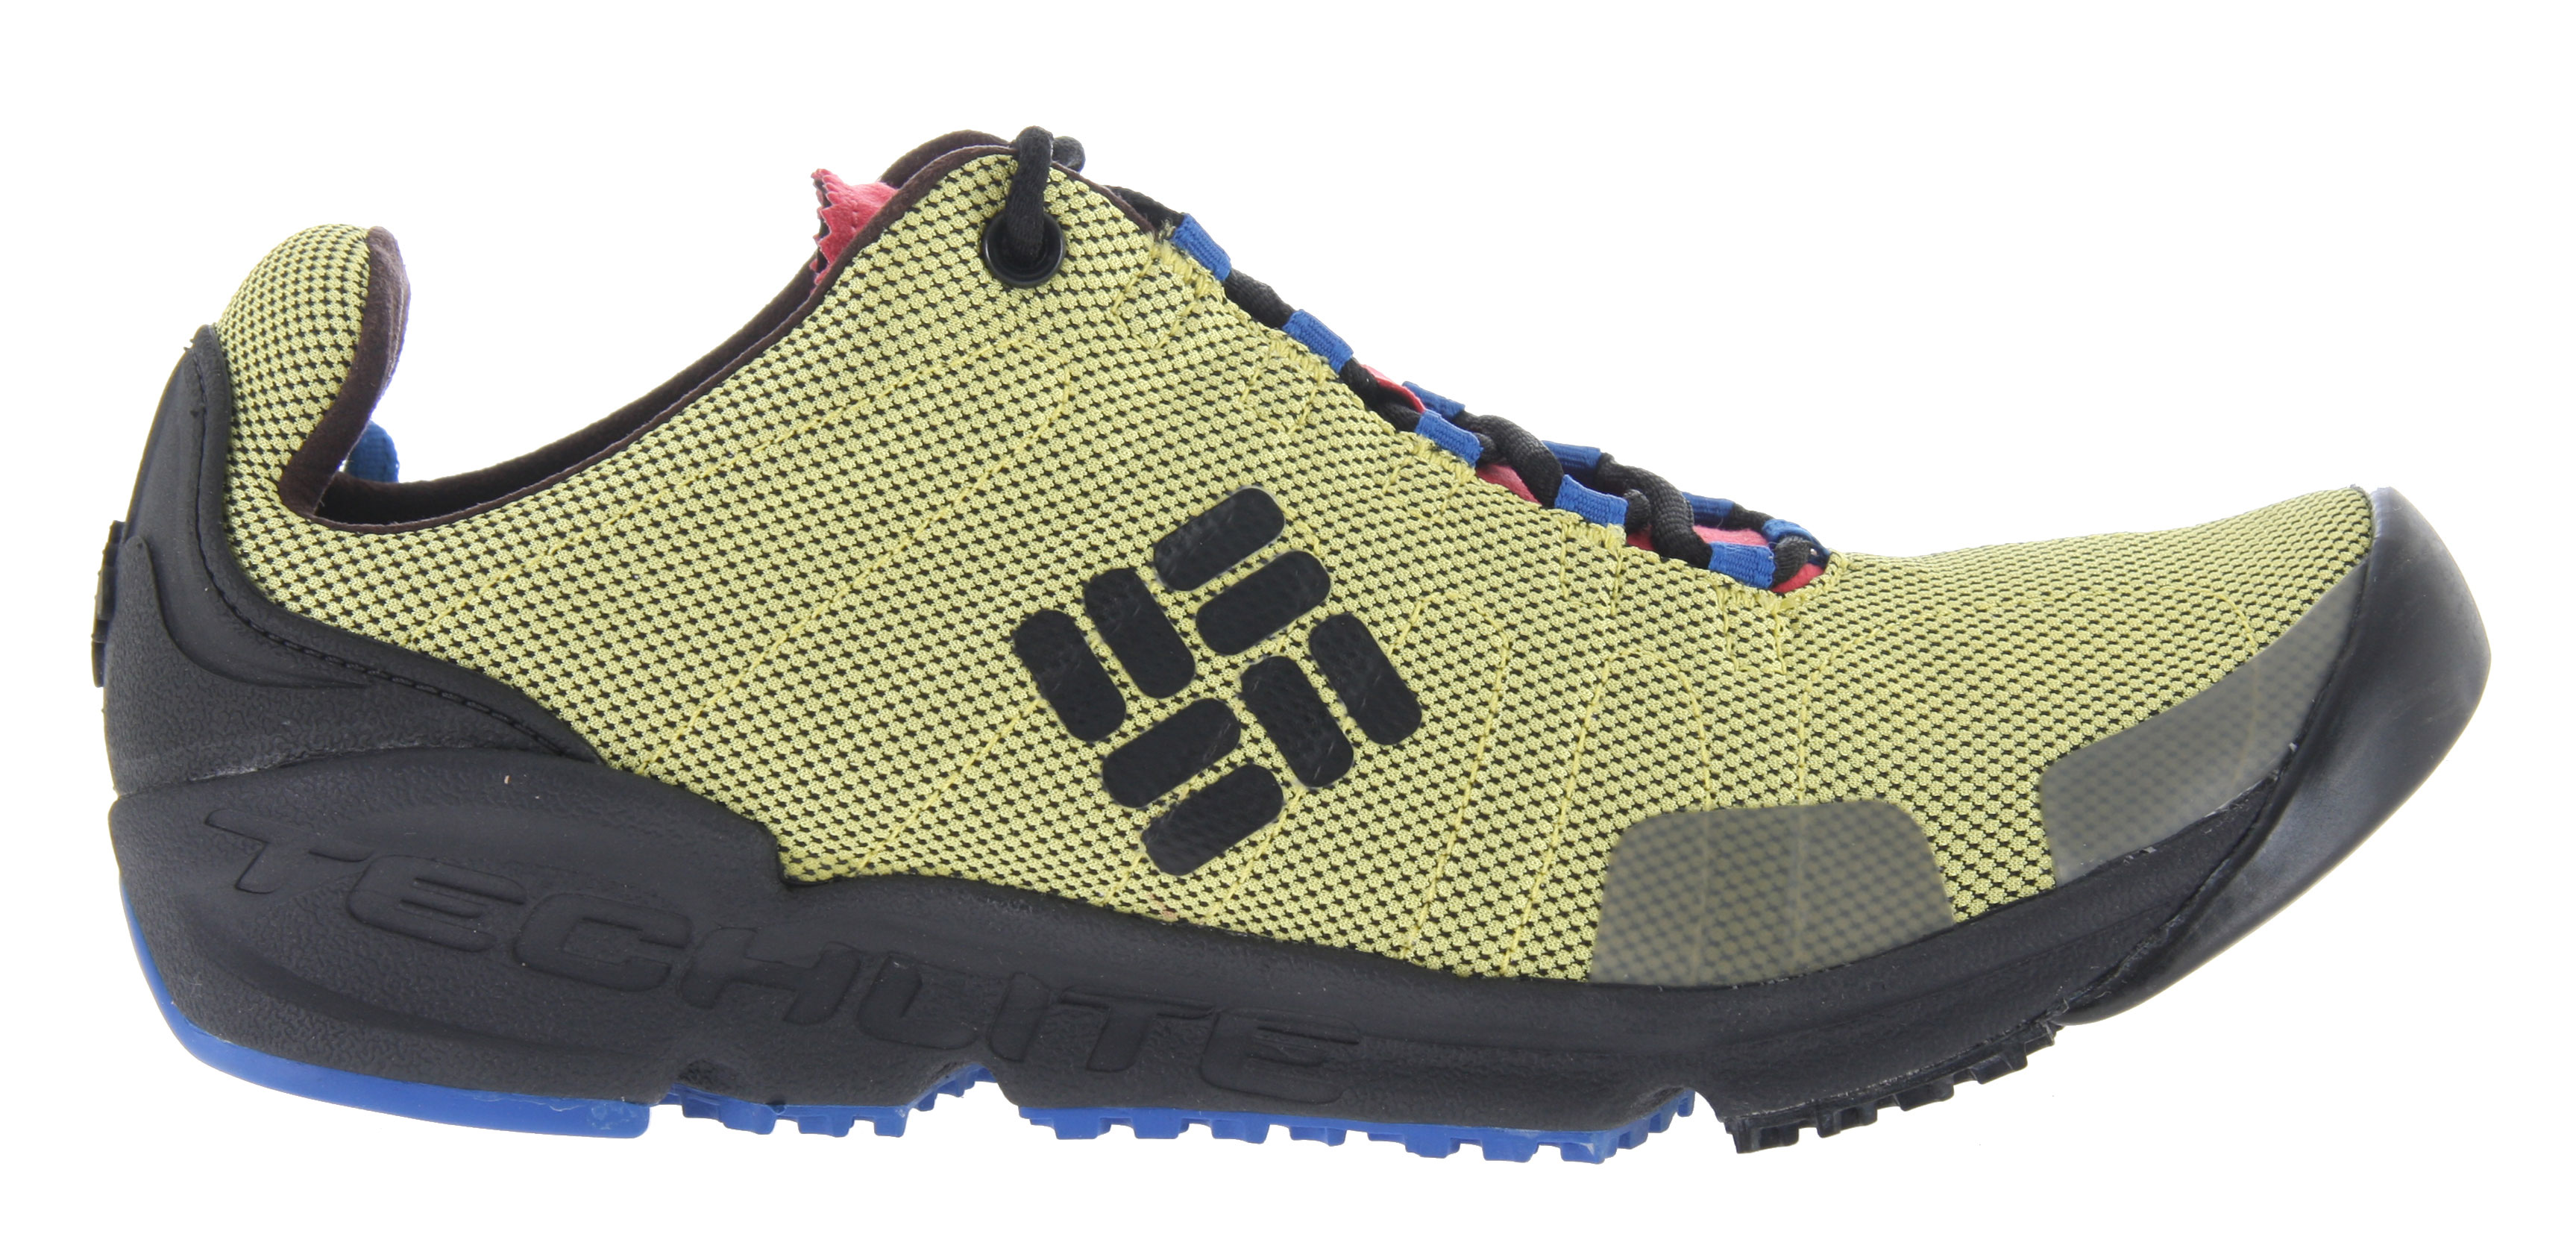 Camp and Hike Inspired by rock climbing but meant for all multisport outdoor activities.  The Descender Shoe is light weight, minimal and super comfortable.Key Features of the Columbia Descender Hiking Shoes: Closed mesh with micro-suede overlays and webbing for support and stability  Techlite heel and tongue for support and comfort Single density Techlite foam offers lightweight cushioning and support Internal TPU shank for torsion control Omni-Grip Sticky rubber compound forefoot for maximum traction on rock and hard surfaces Omni-Grip high traction rubber compound for trail traction in all terrain - $59.95